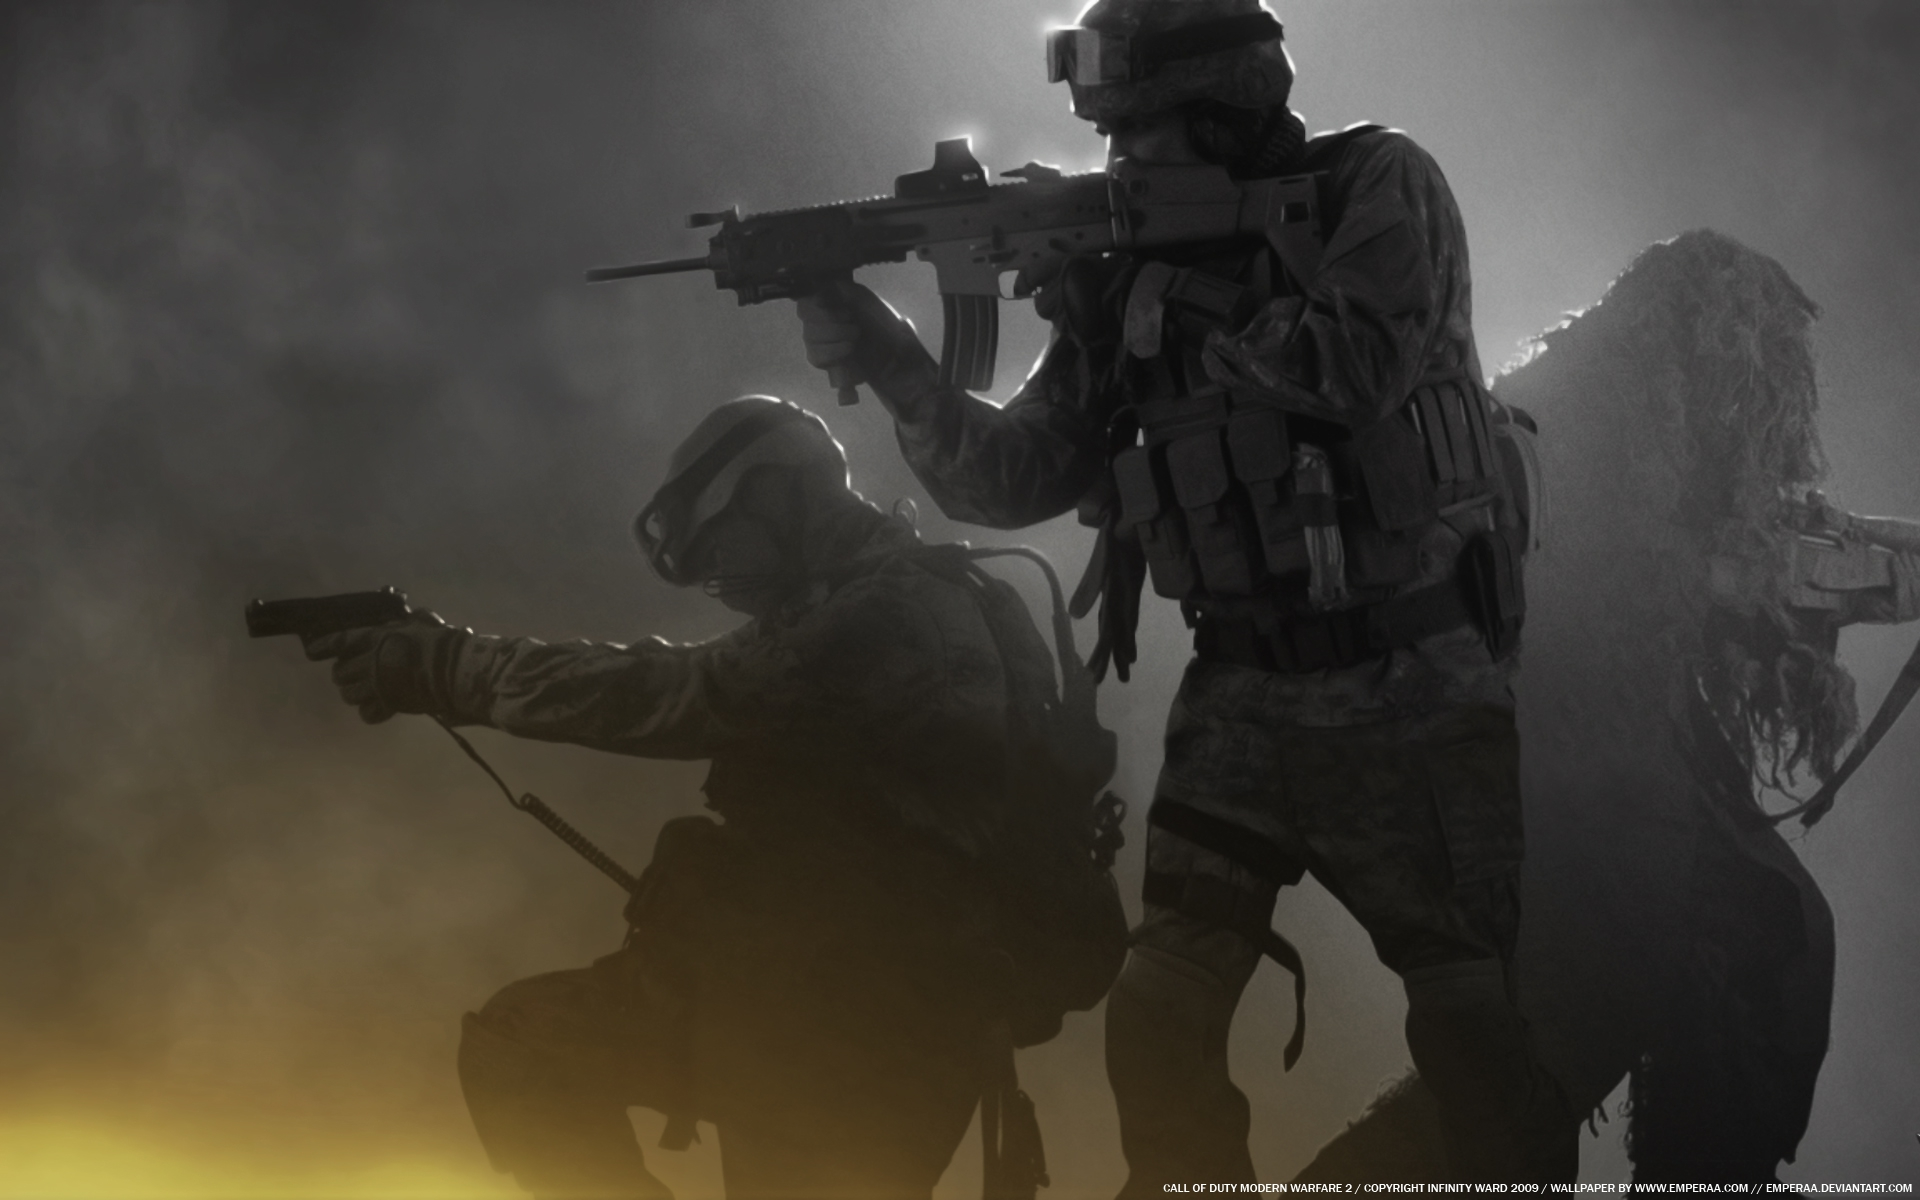 soldiers video games call of duty modern warfare call 1920x1200 1920x1200